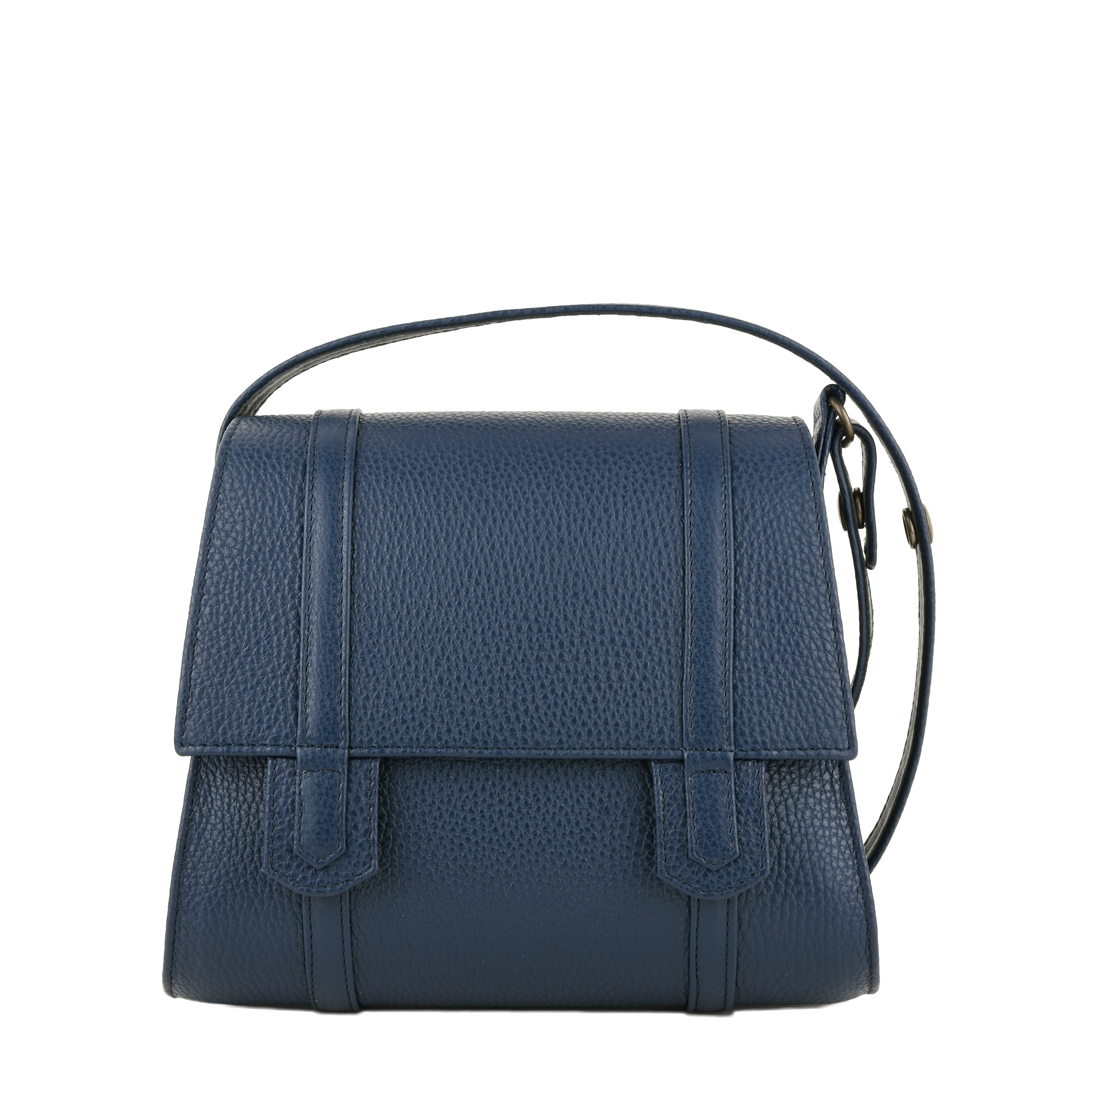 Chloe Navy Across Body Leather Bag